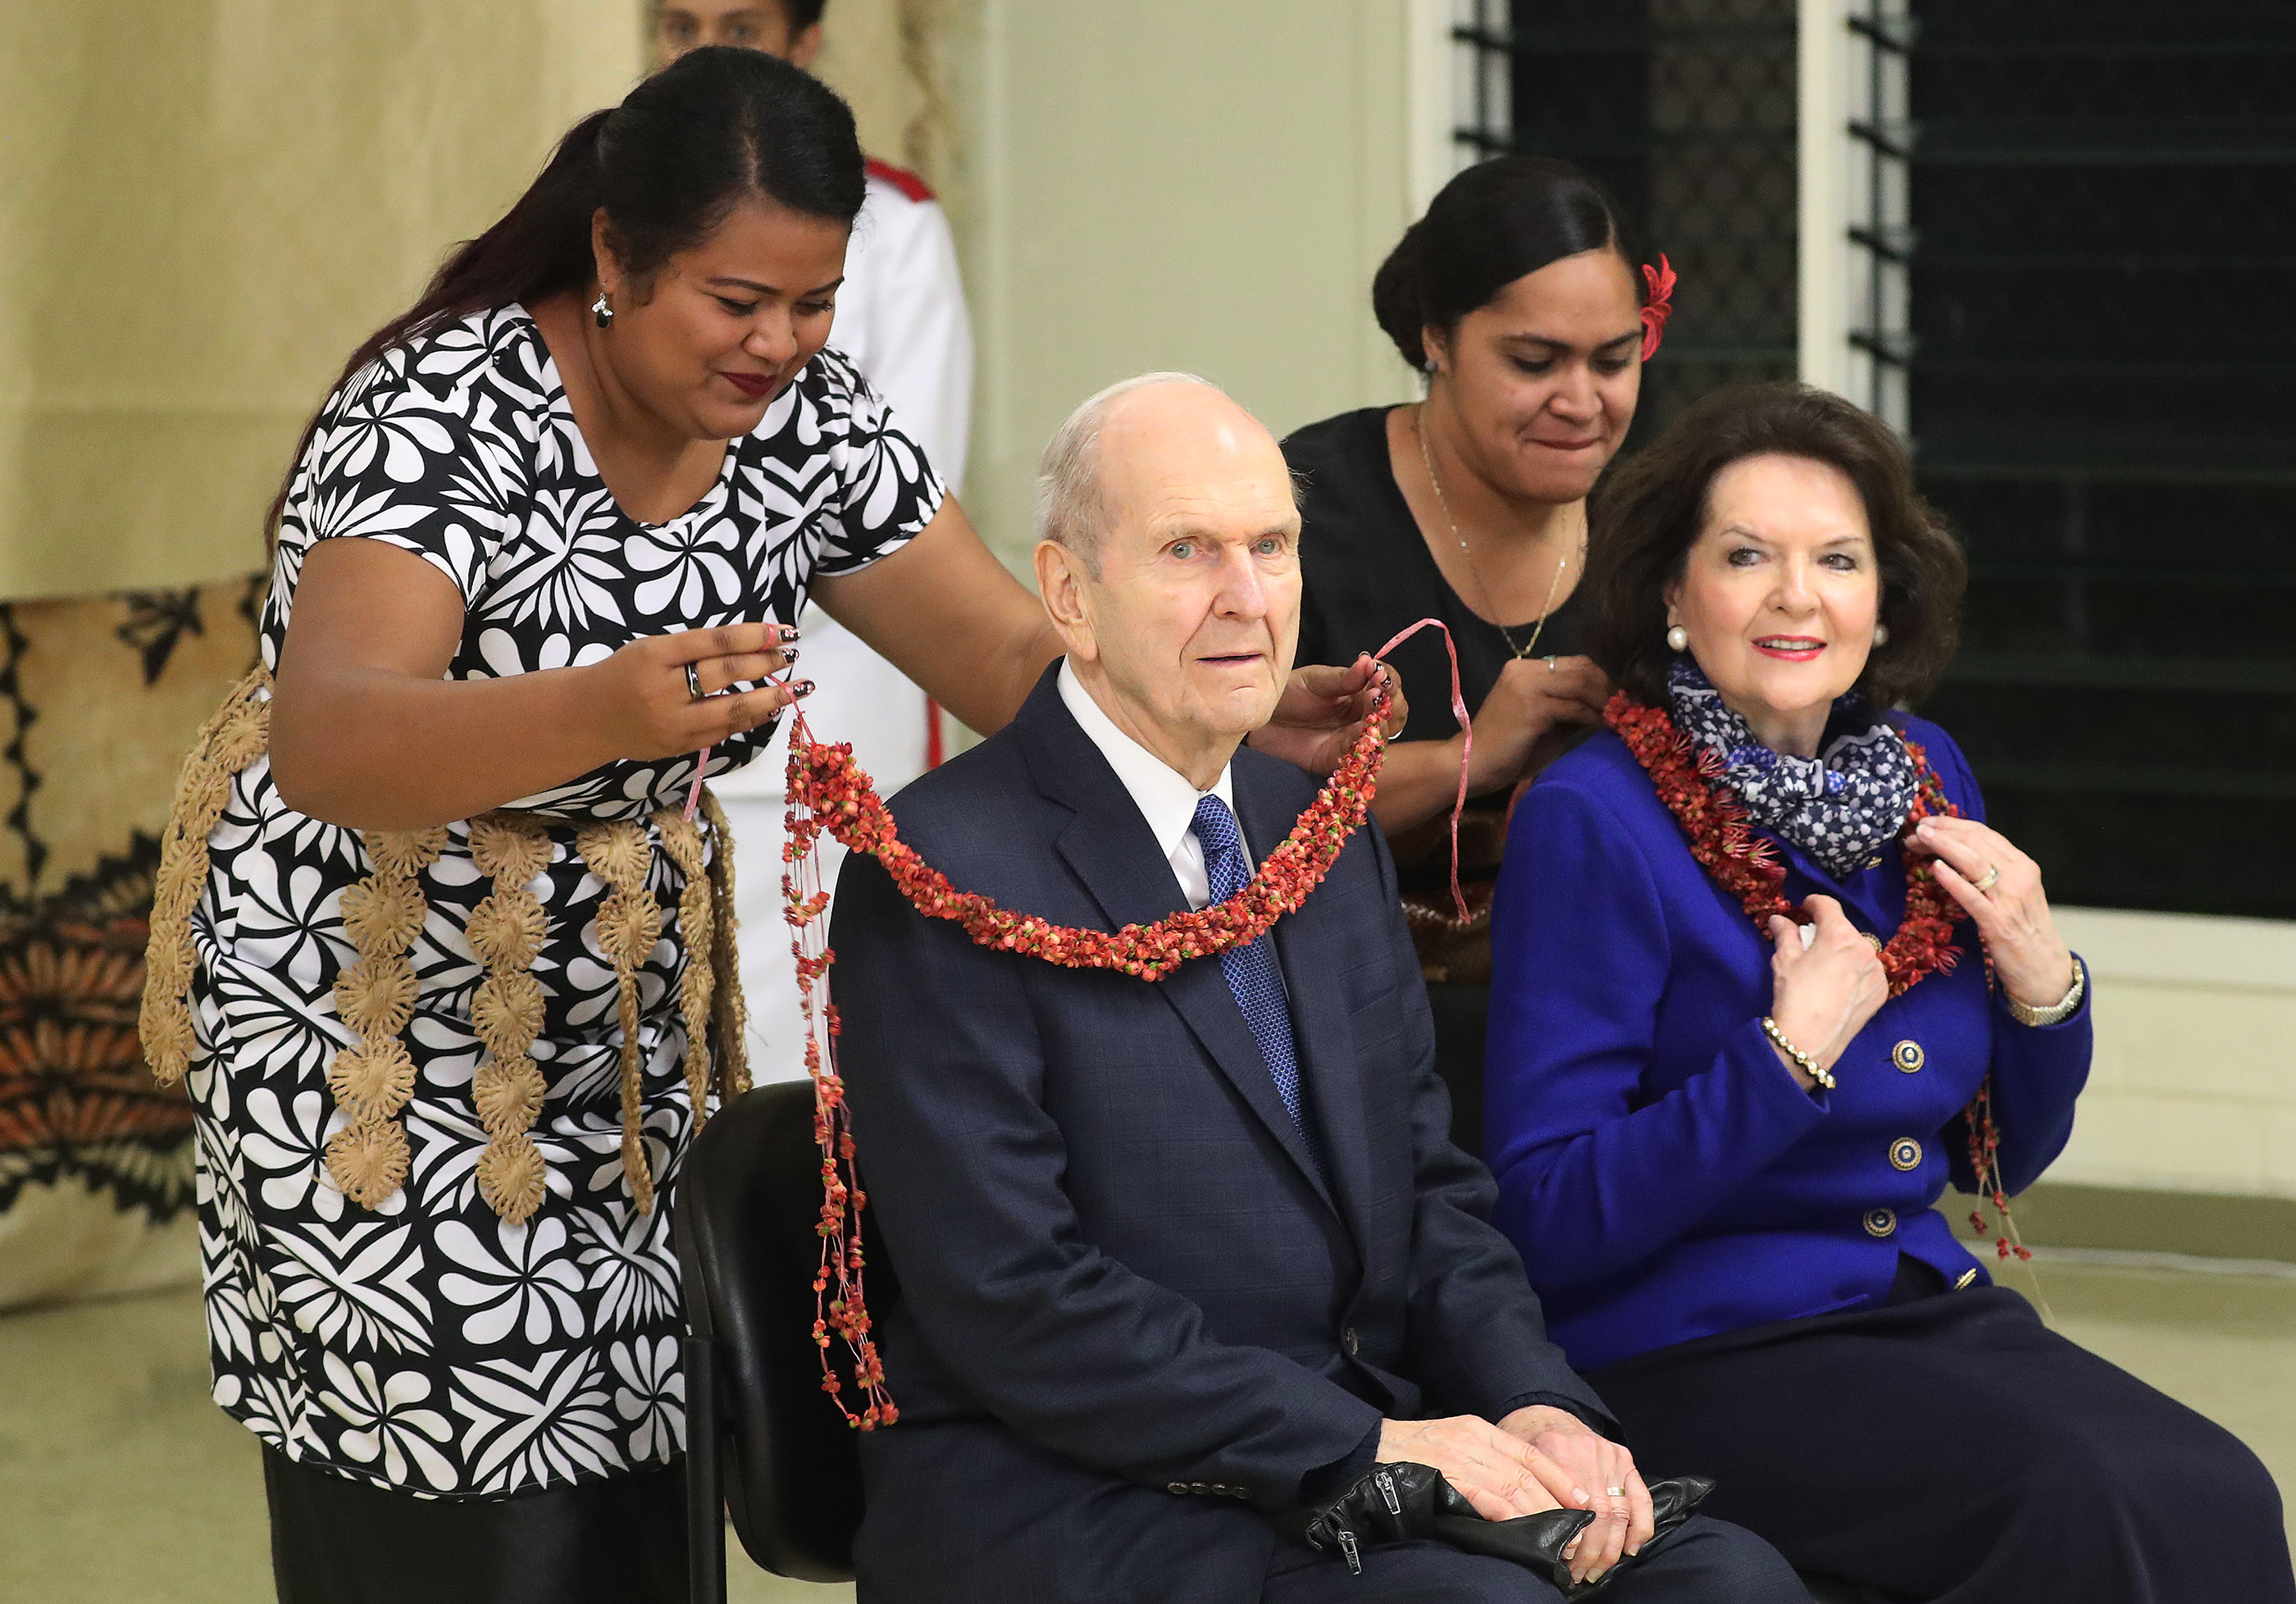 President Russell M. Nelson of The Church of Jesus Christ of Latter-day Saints and his wife, Sister Wendy Nelson, receive a lei in Nuku'alofa, Tonga, on May 23, 2019.